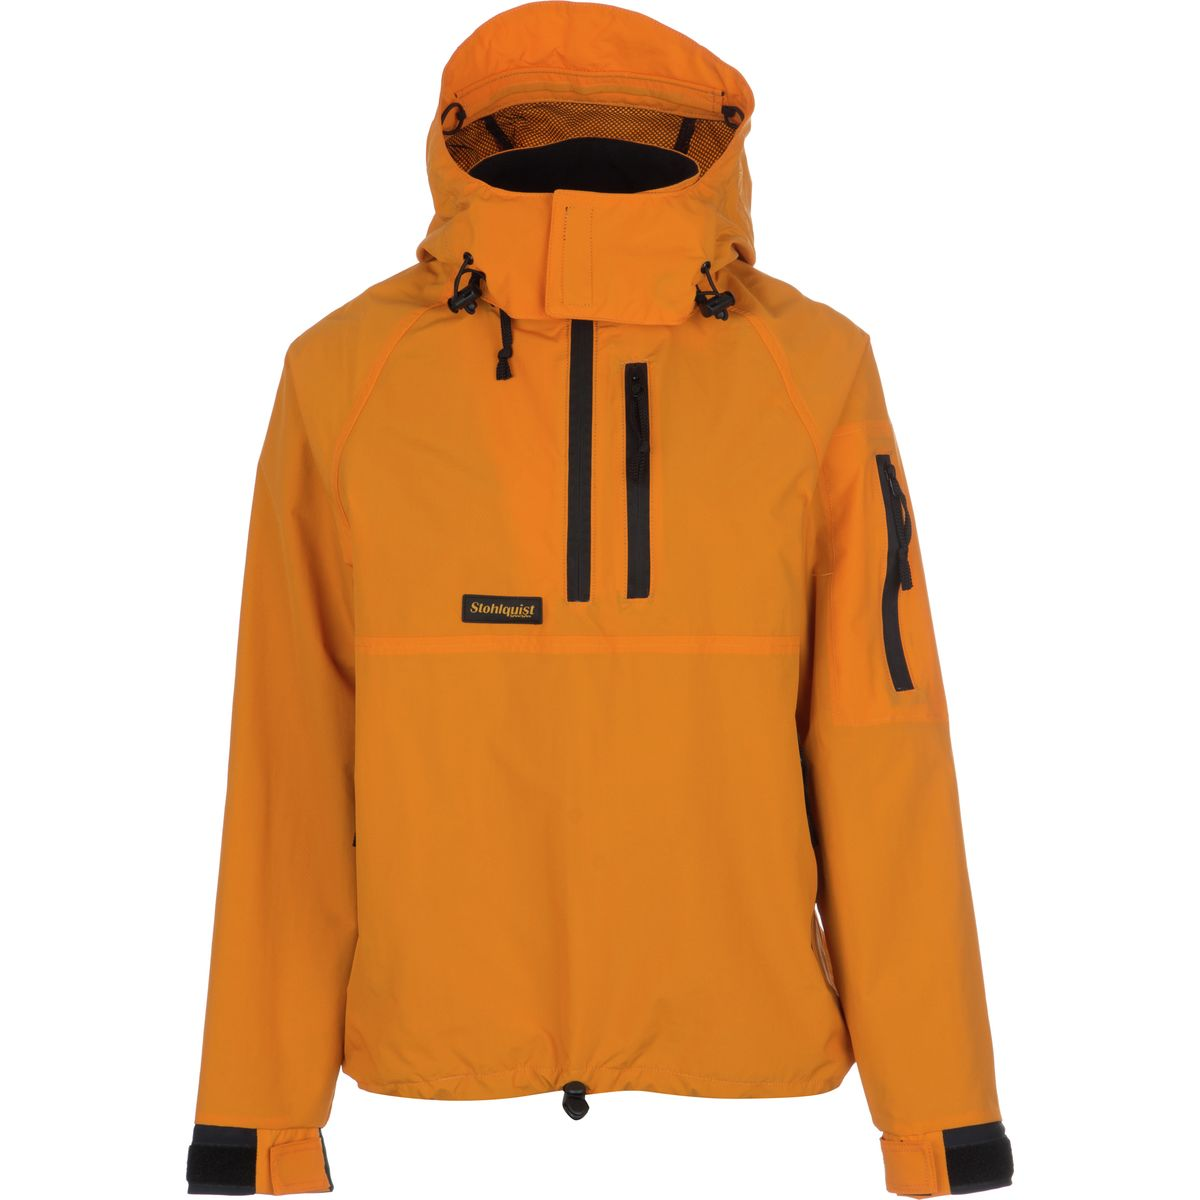 Stohlquist SplashDown ST Jacket